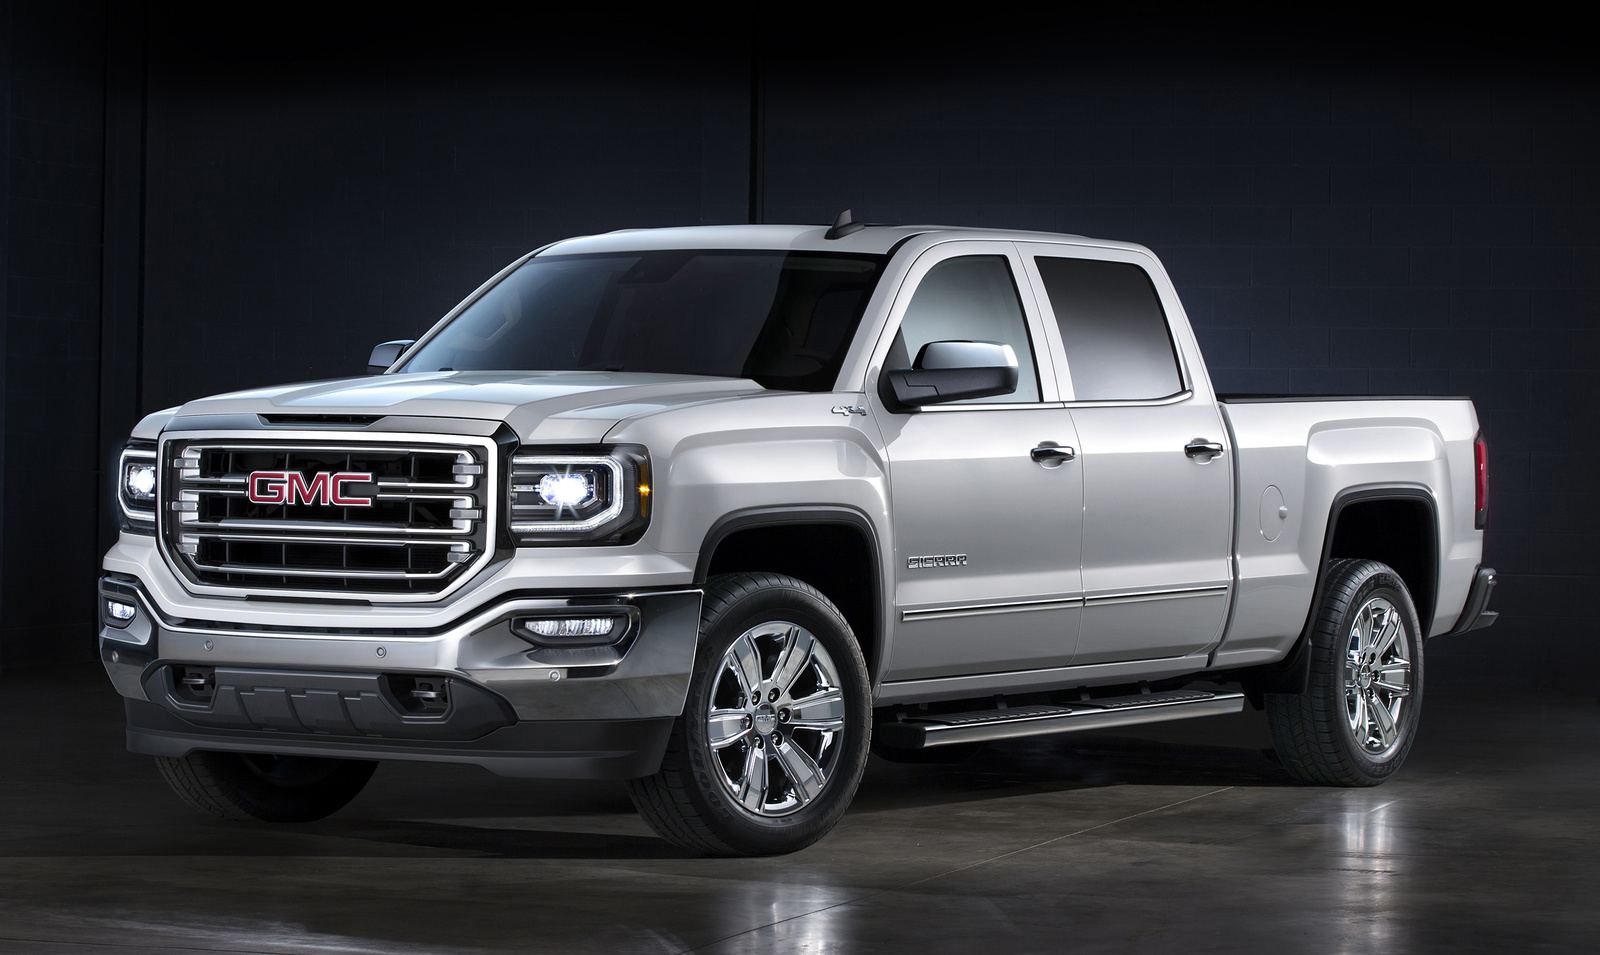 2016 gmc sierra 1500 review cargurus. Black Bedroom Furniture Sets. Home Design Ideas